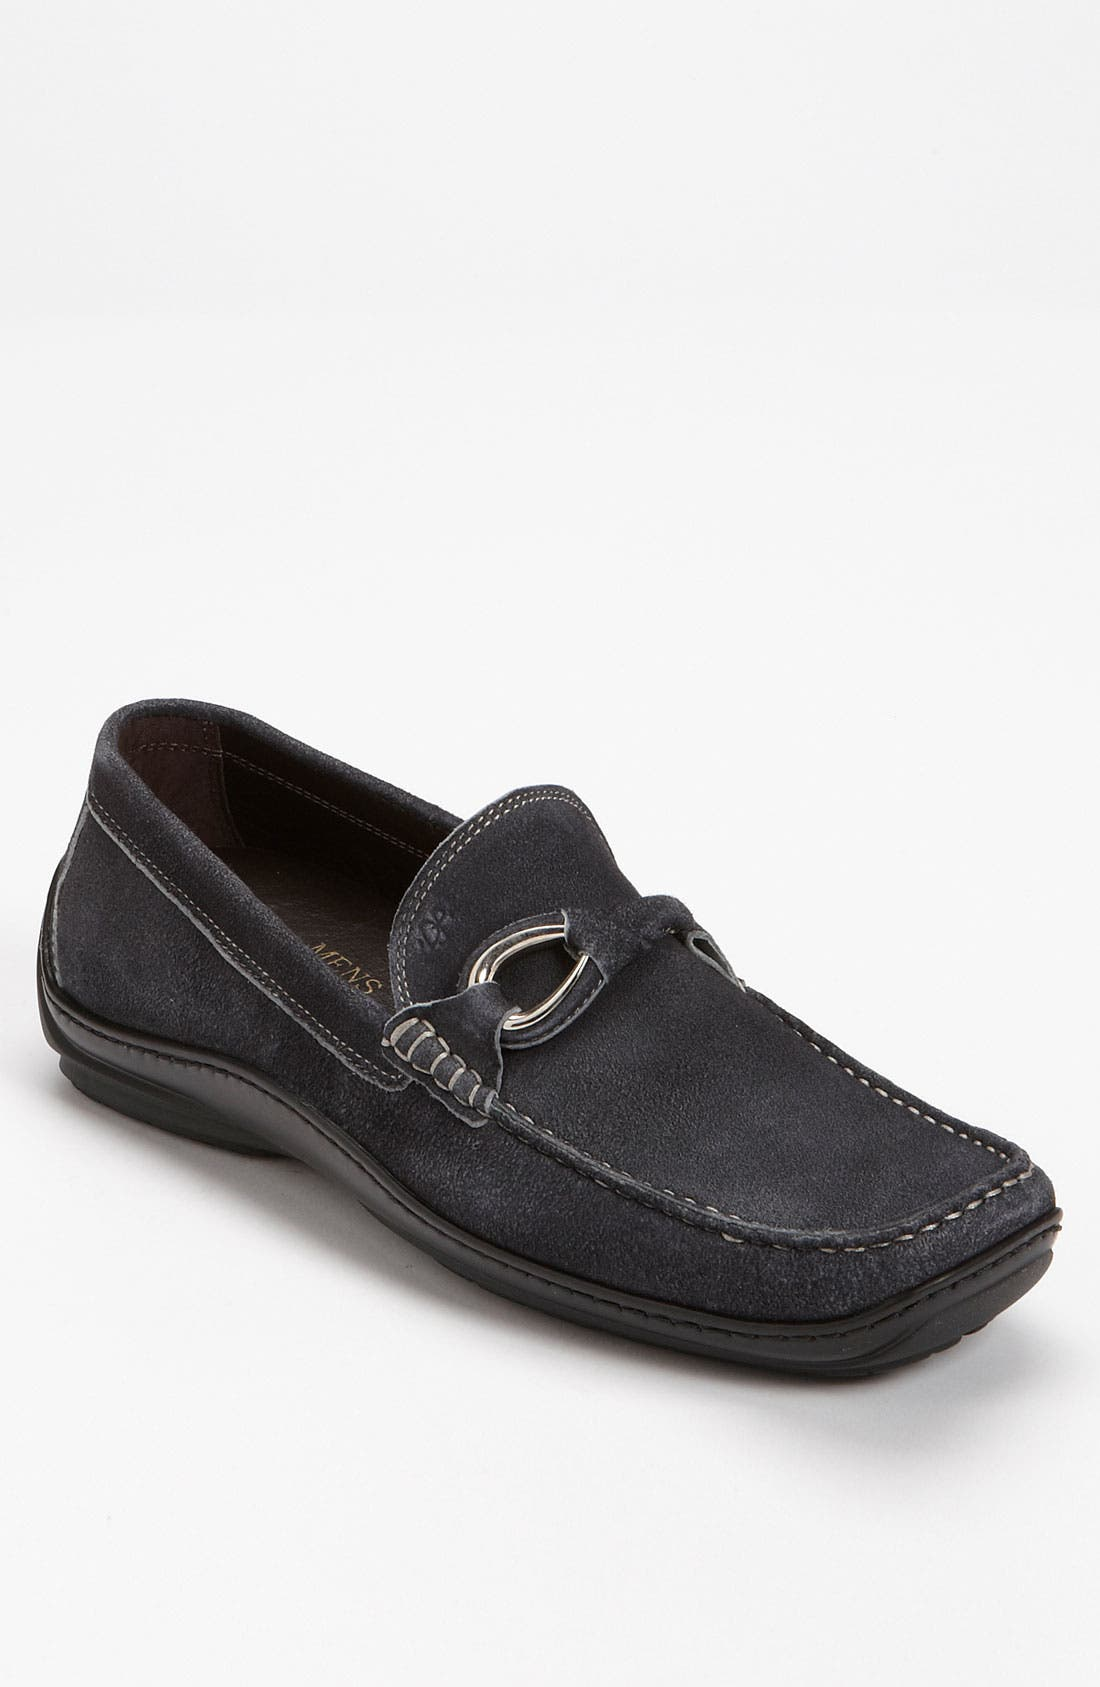 Main Image - Donald J Pliner 'Edlyn' Loafer